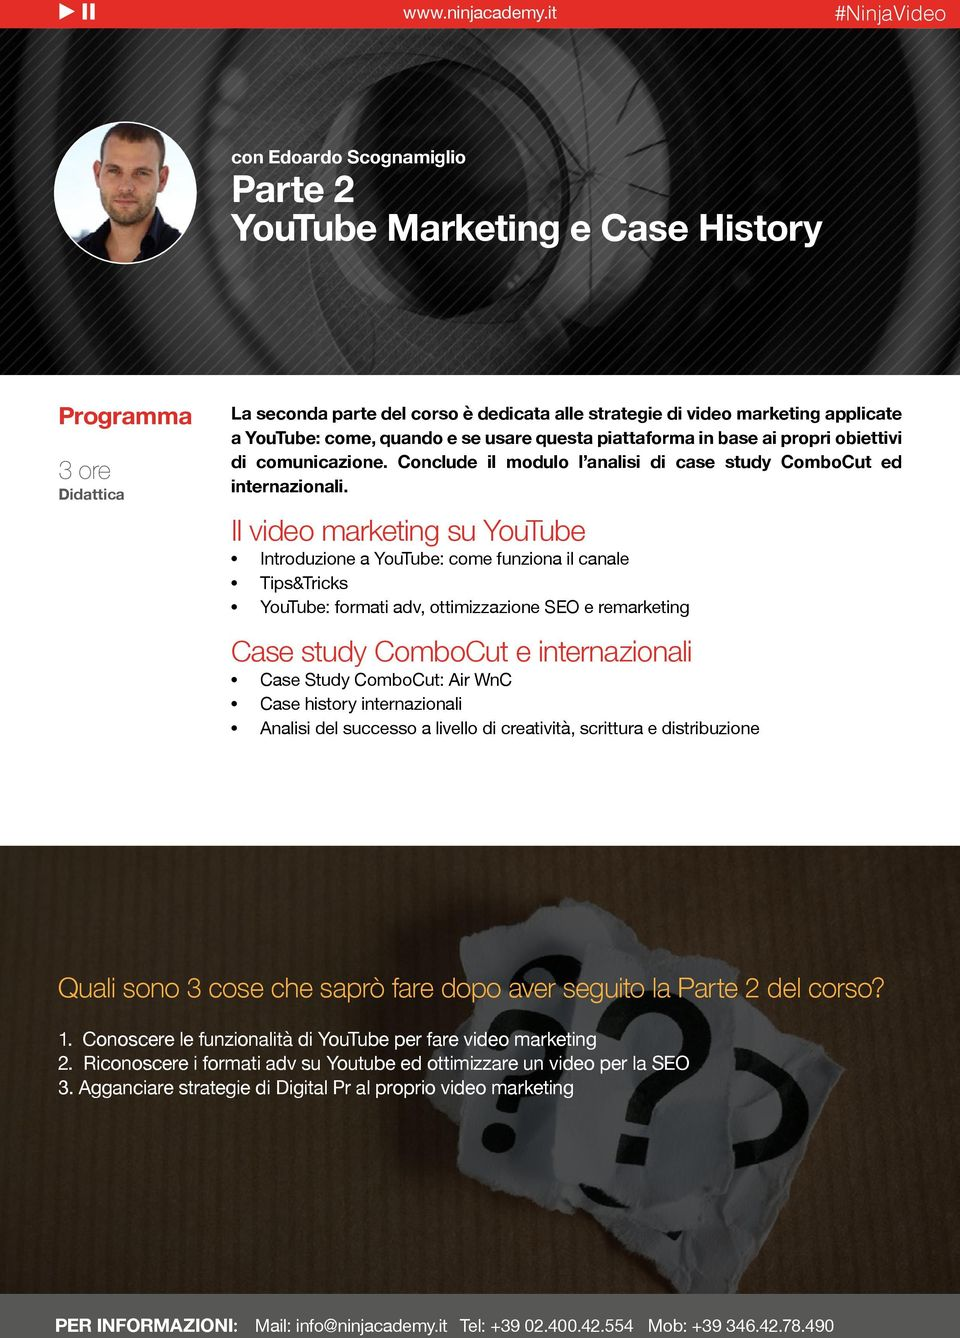 Il video marketing su YouTube Introduzione a YouTube: come funziona il canale Tips&Tricks YouTube: formati adv, ottimizzazione SEO e remarketing Case study ComboCut e internazionali Case Study